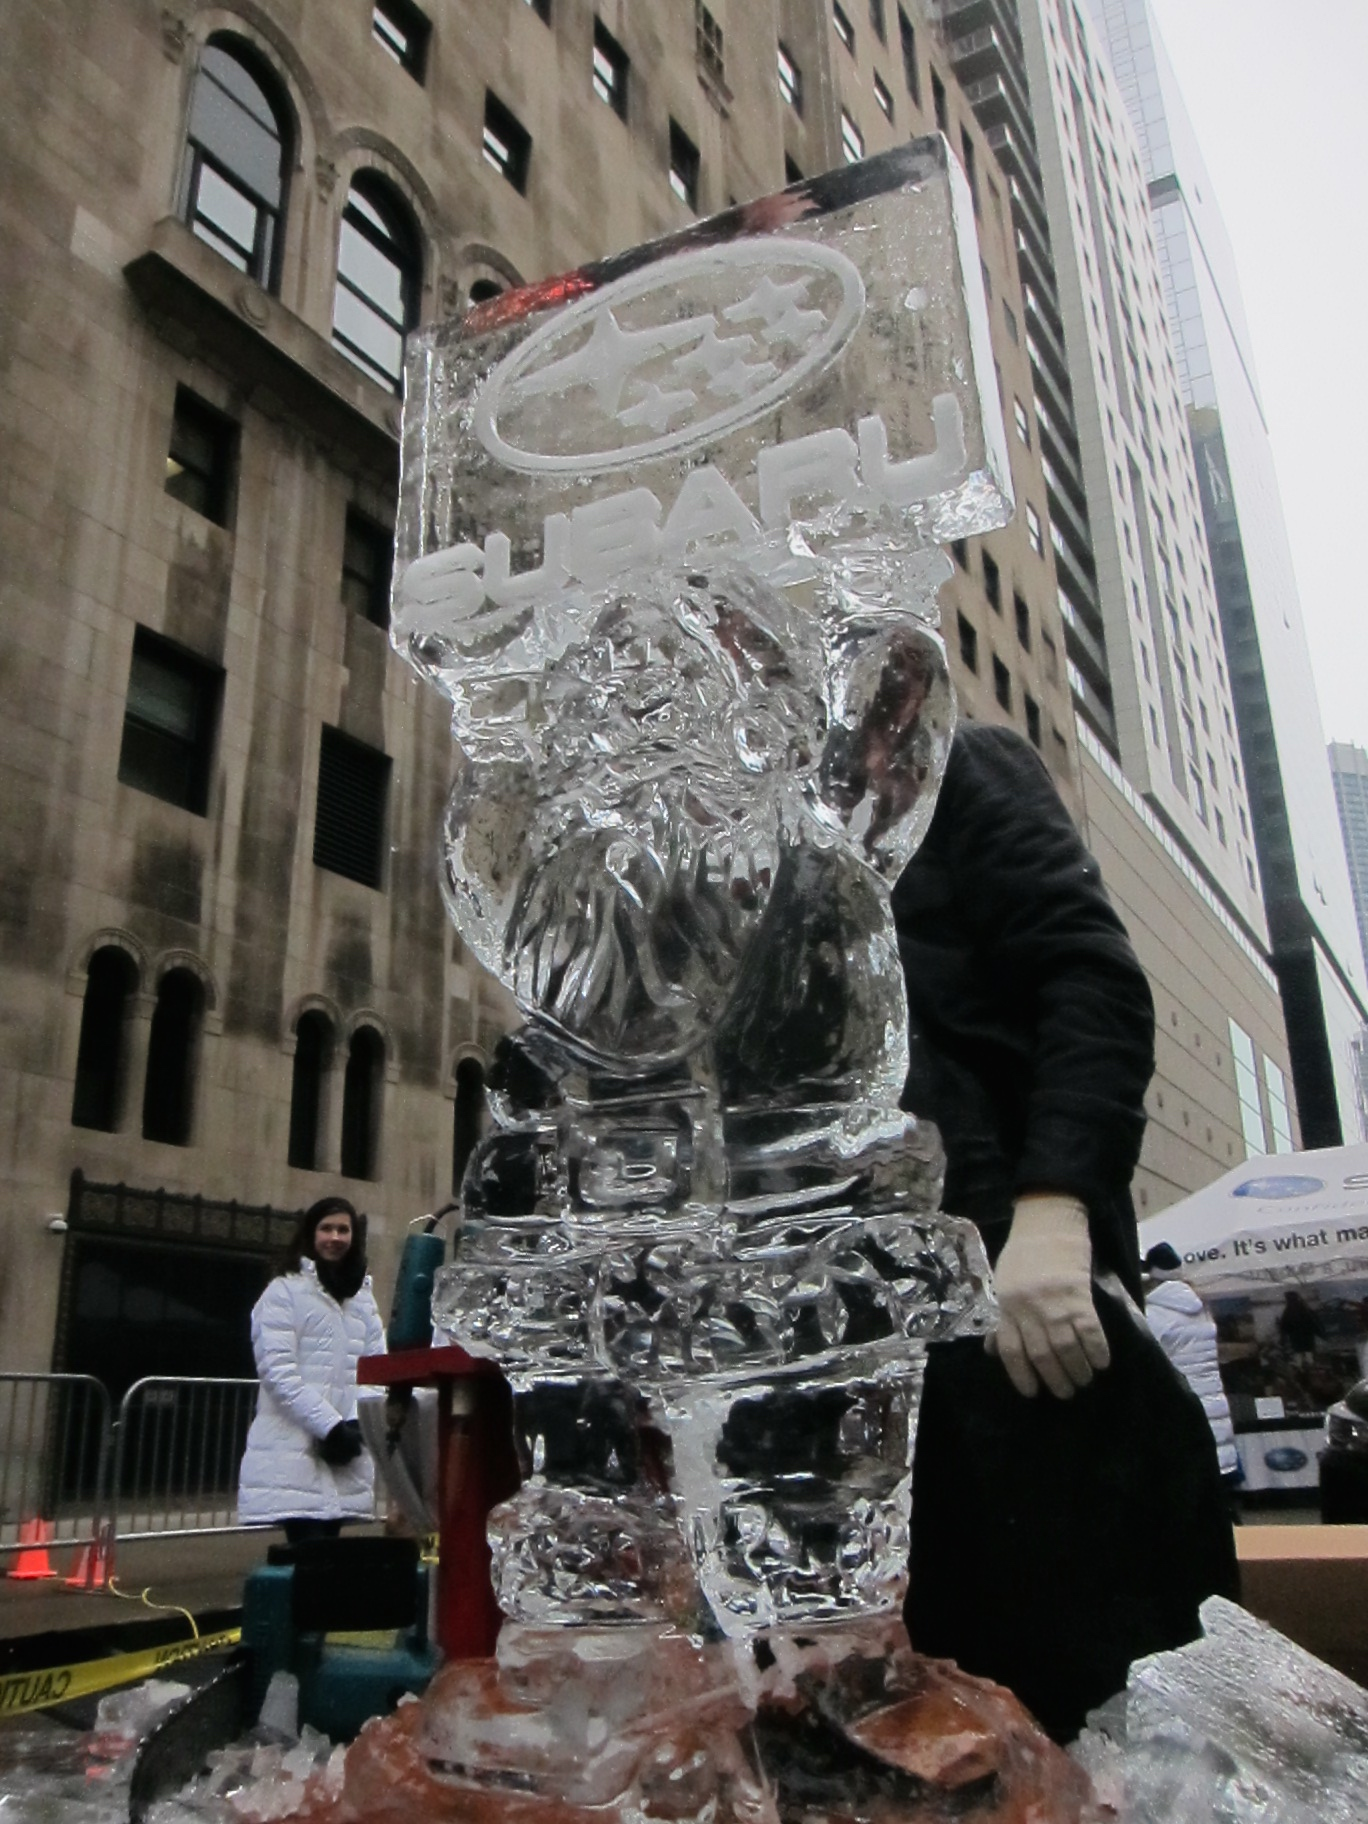 Subaru Live Ice Sculpture Demonstration